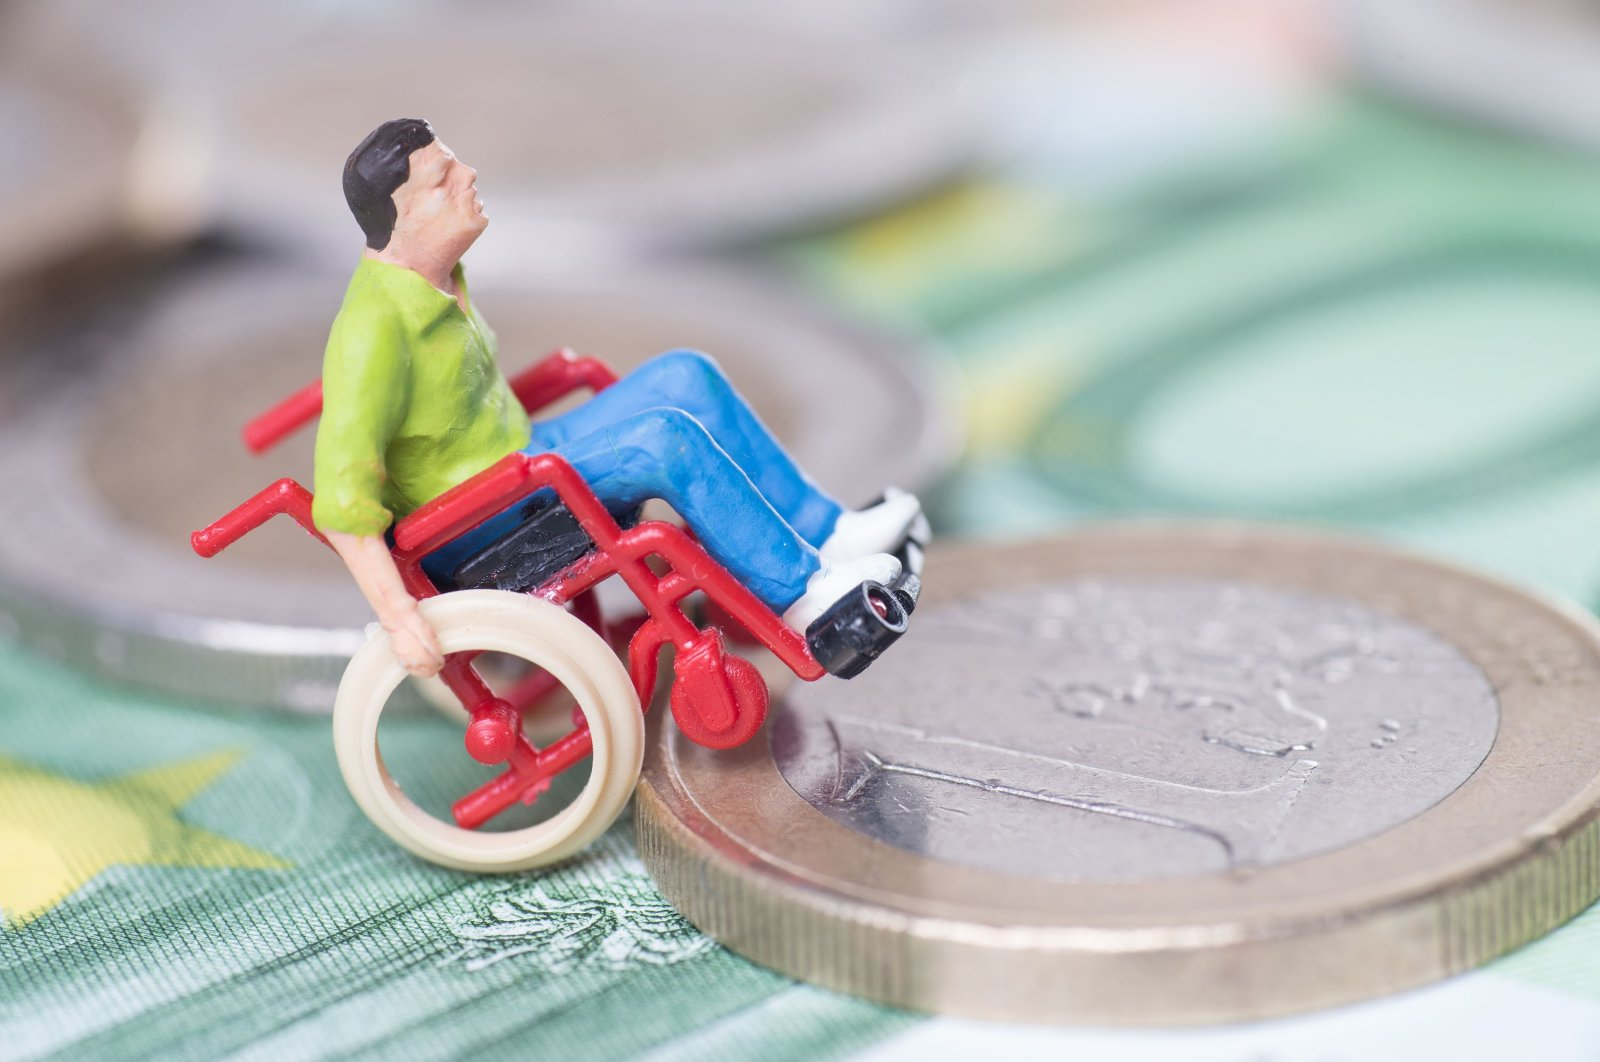 A figurine of a person in a wheelchair getting onto a coin. (Shutterstock)